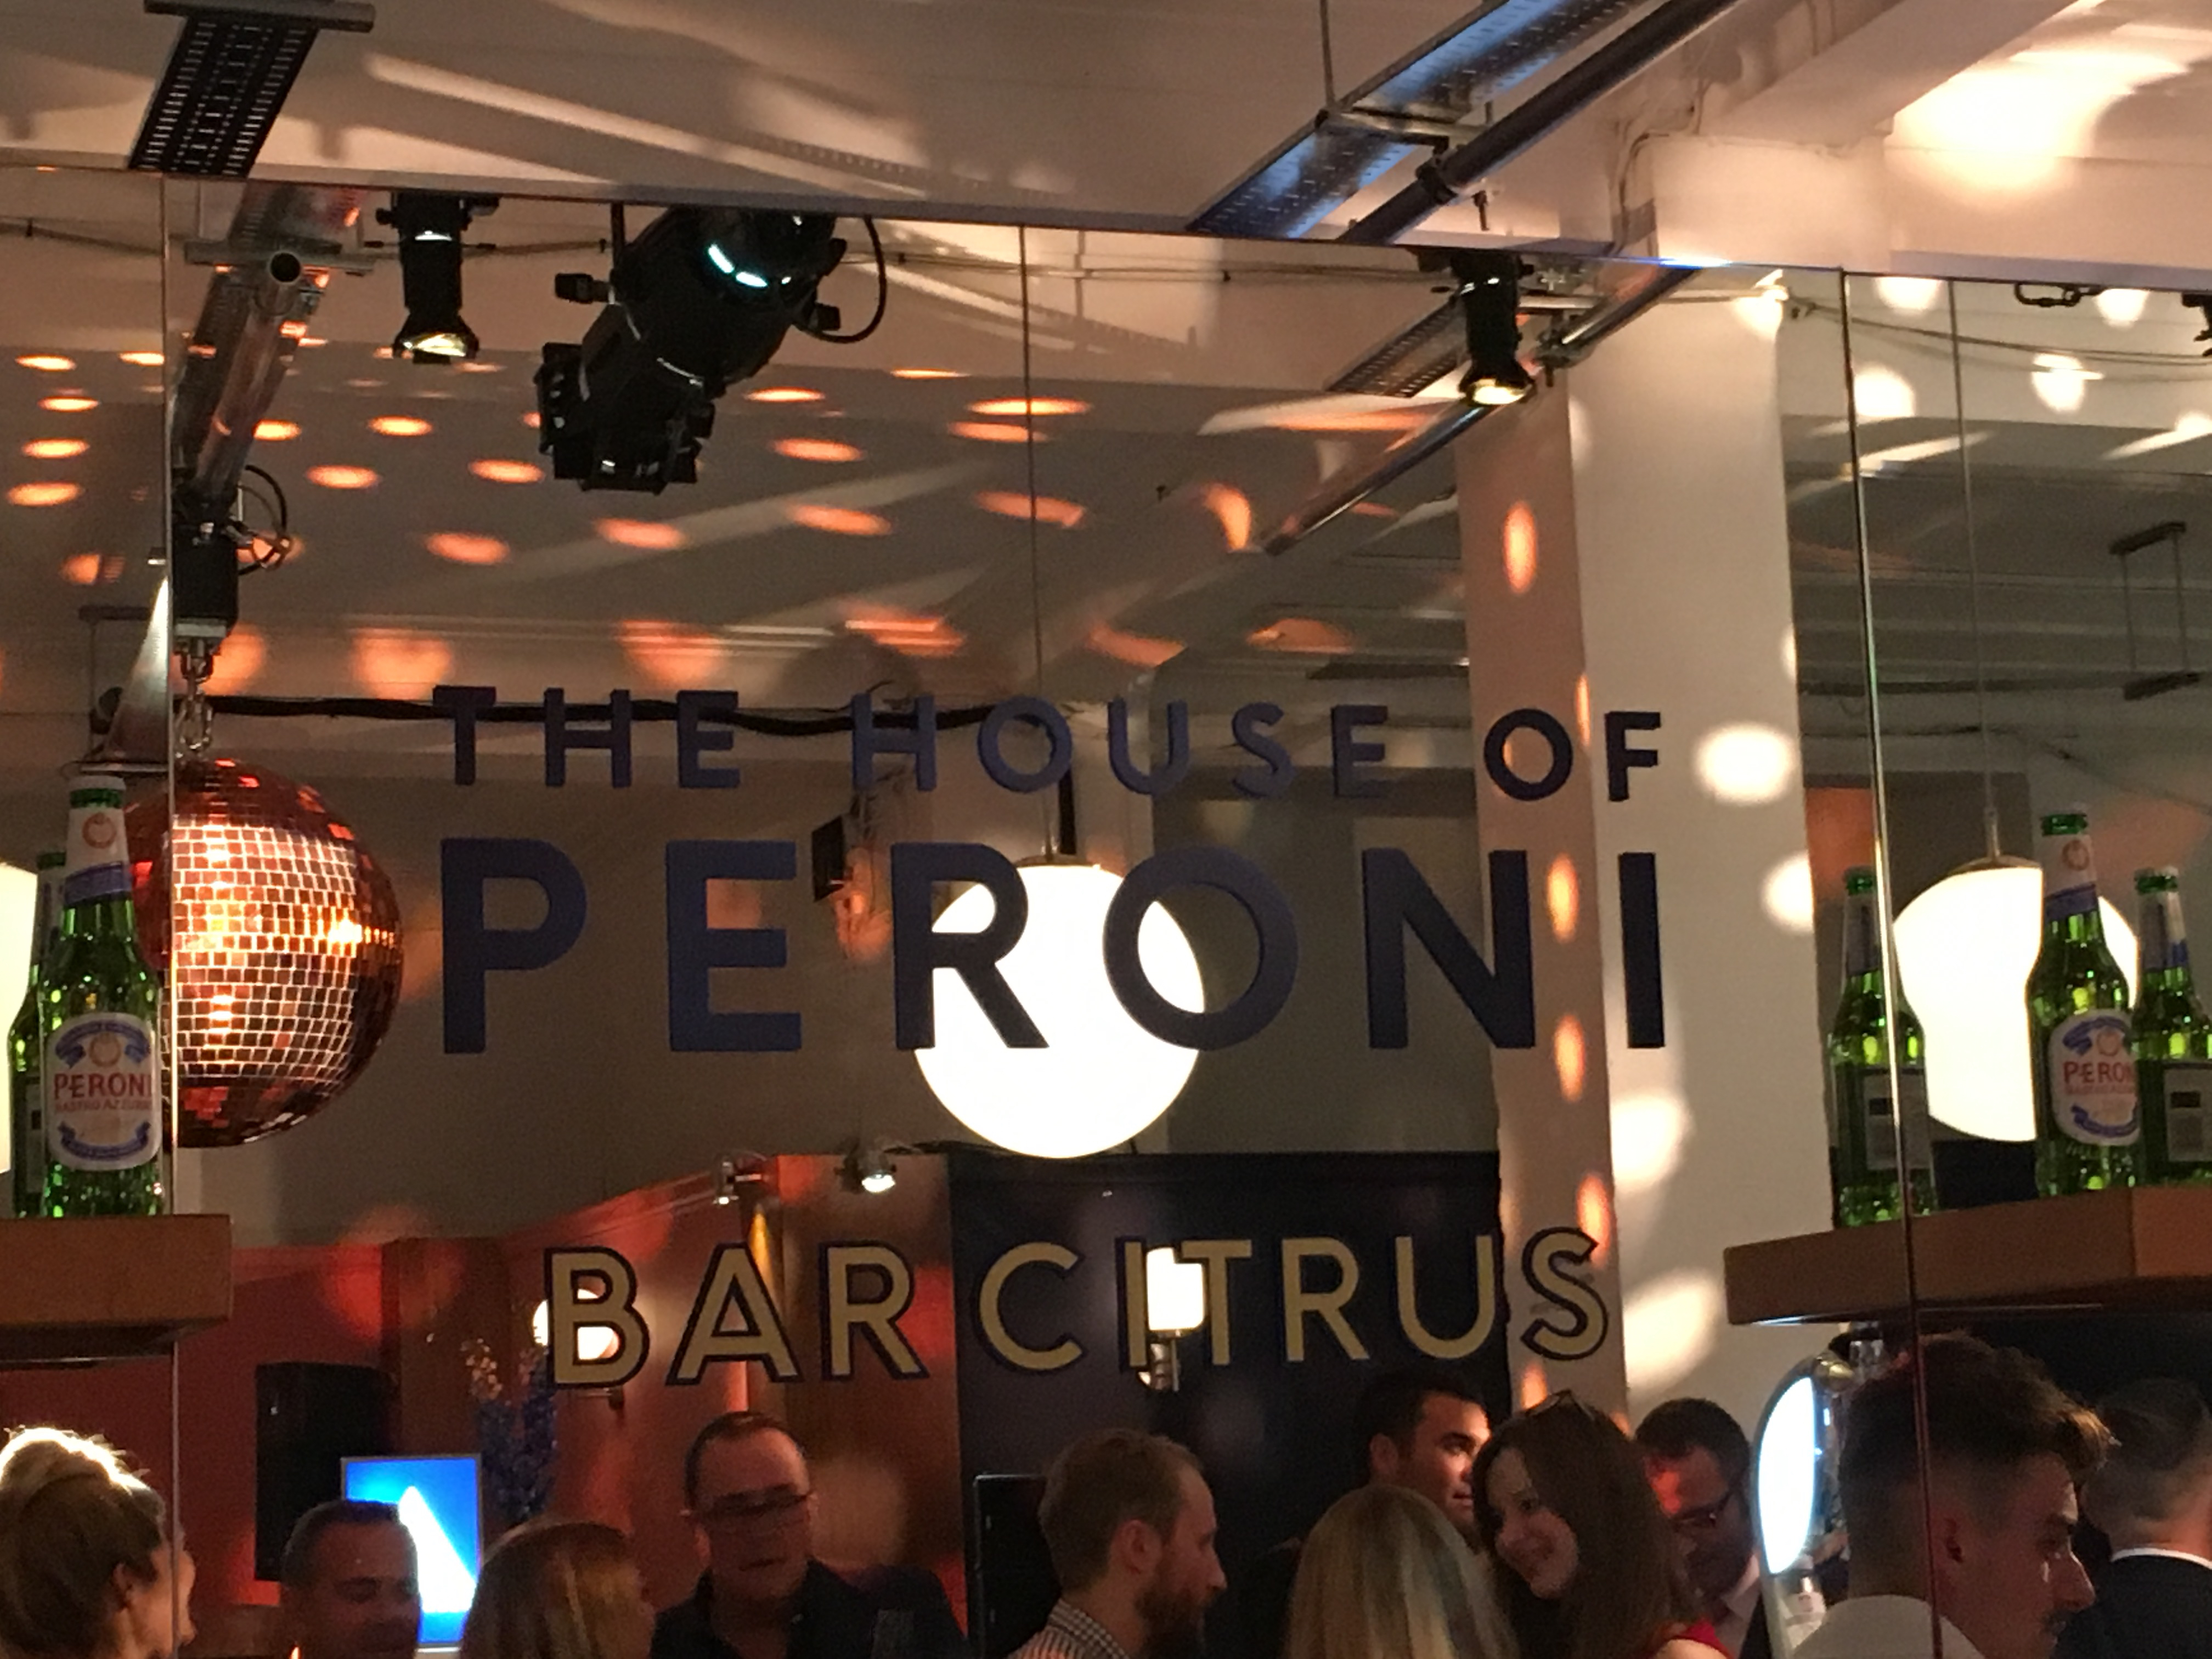 House of Peroni - Bar Citrus